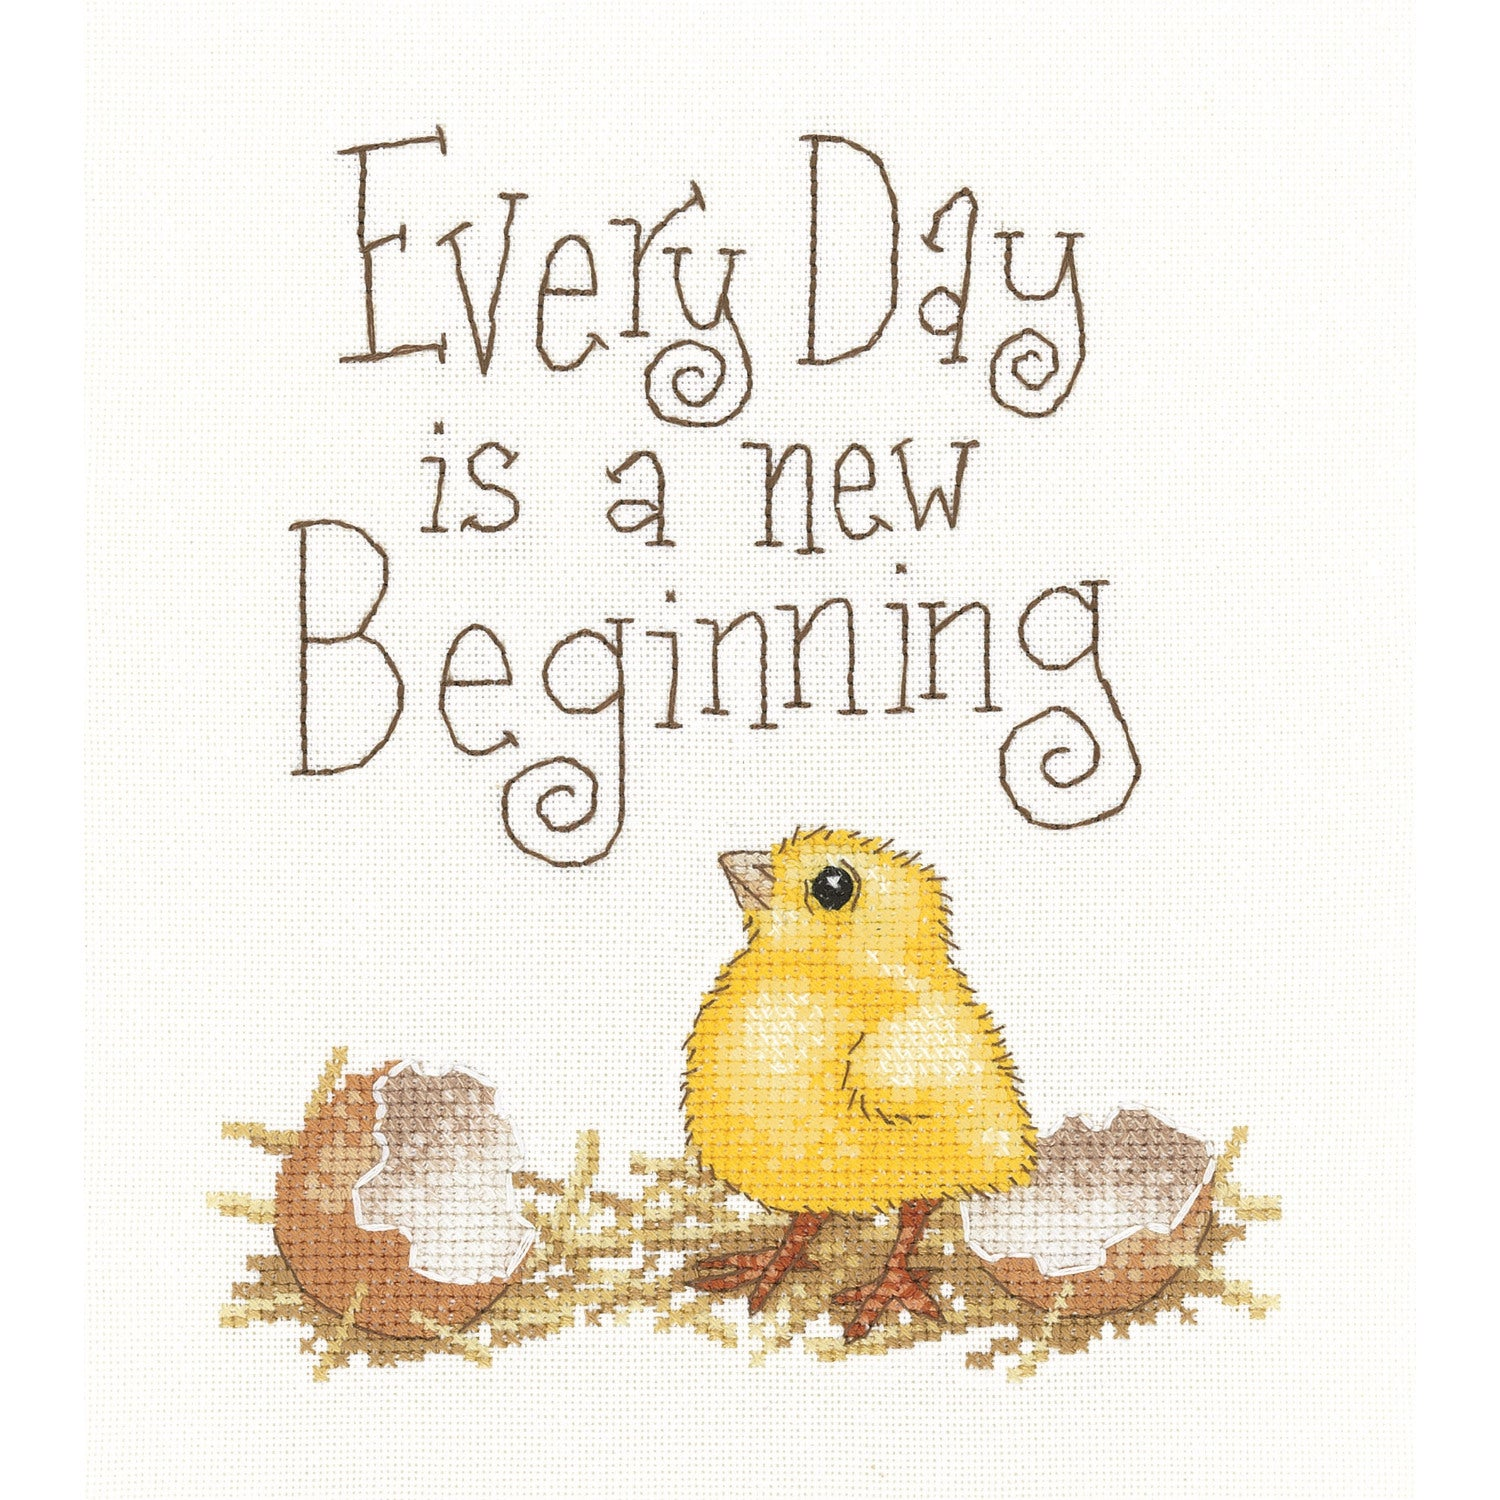 Every Day <br />Counted Cross Stitch Kit